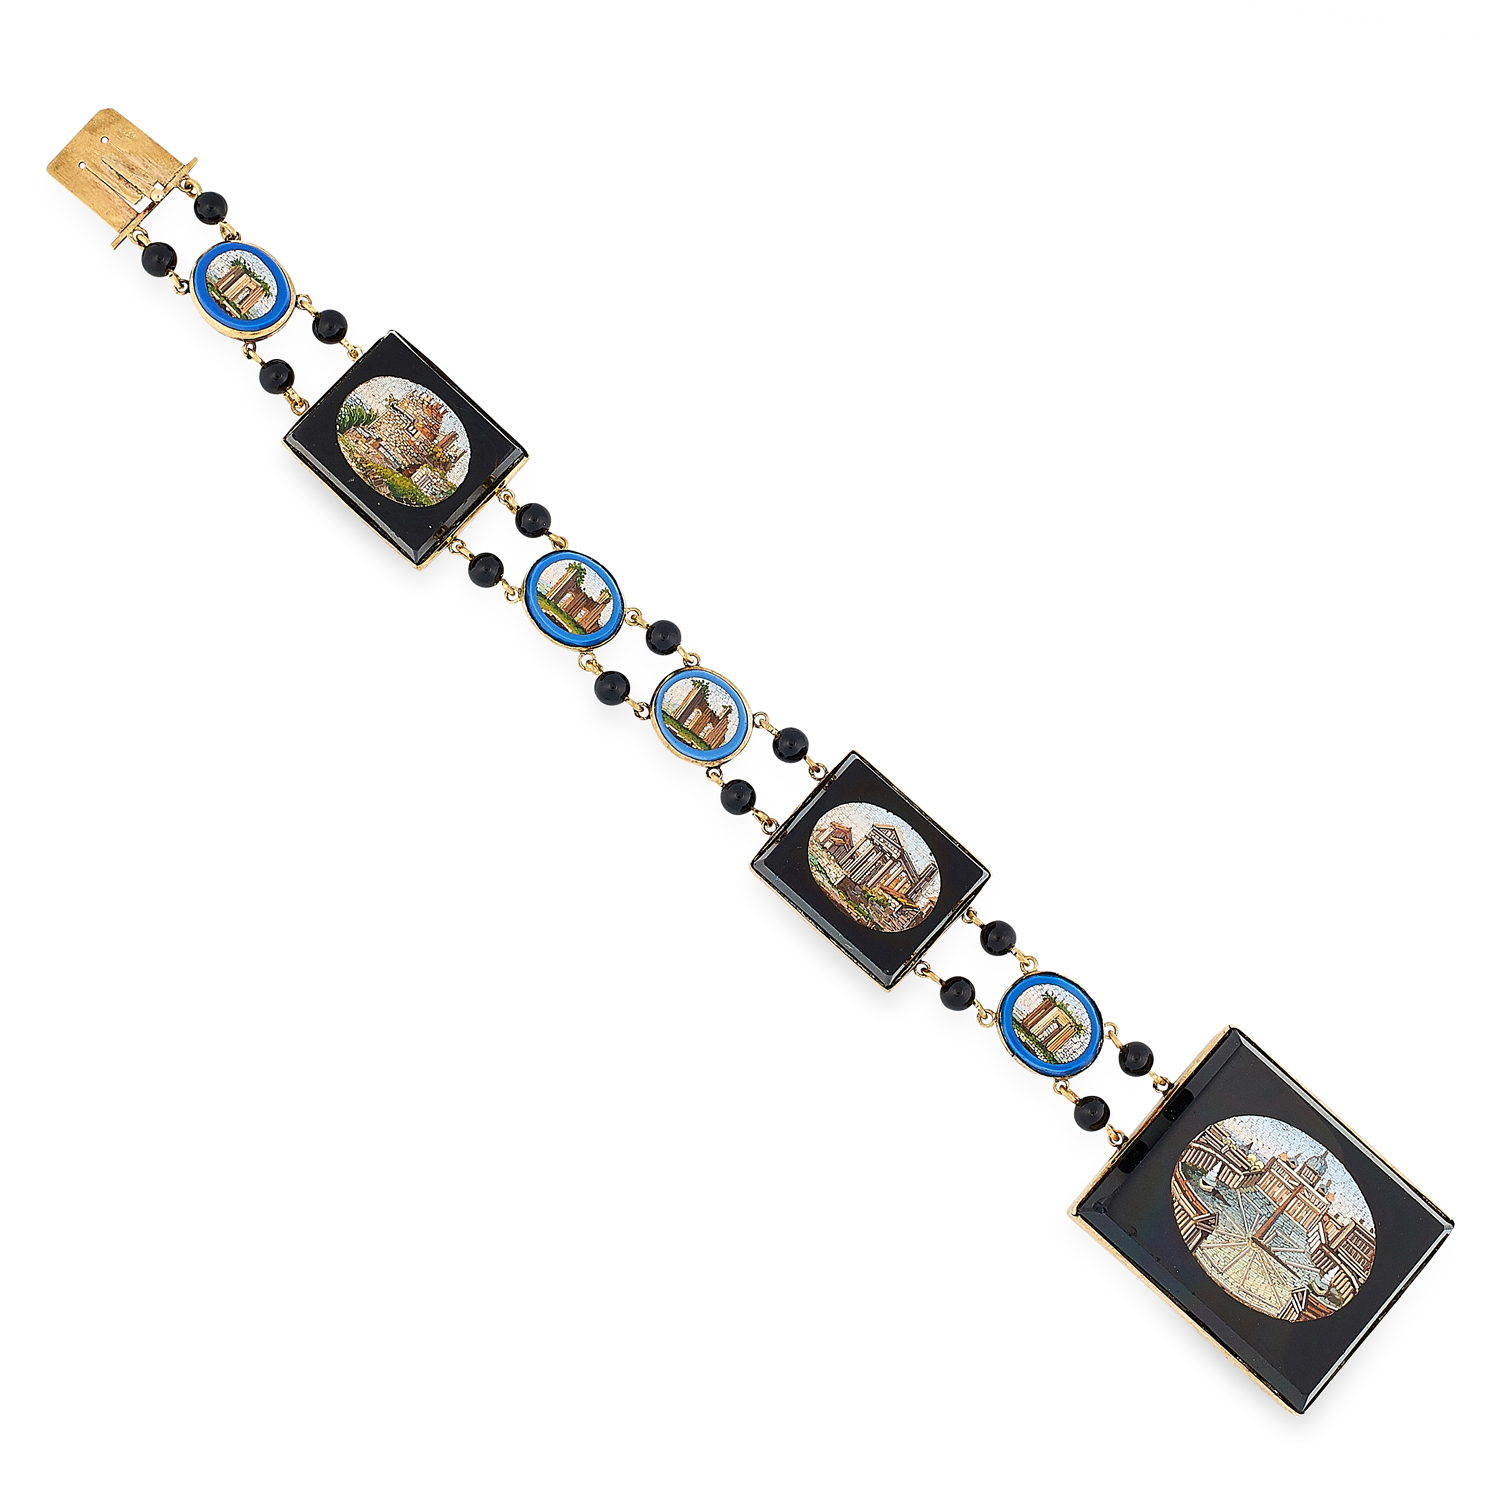 AN ANTIQUE MICROMOSAIC BRACELET, 19TH CENTURY in yellow gold, comprising three graduated rectangular